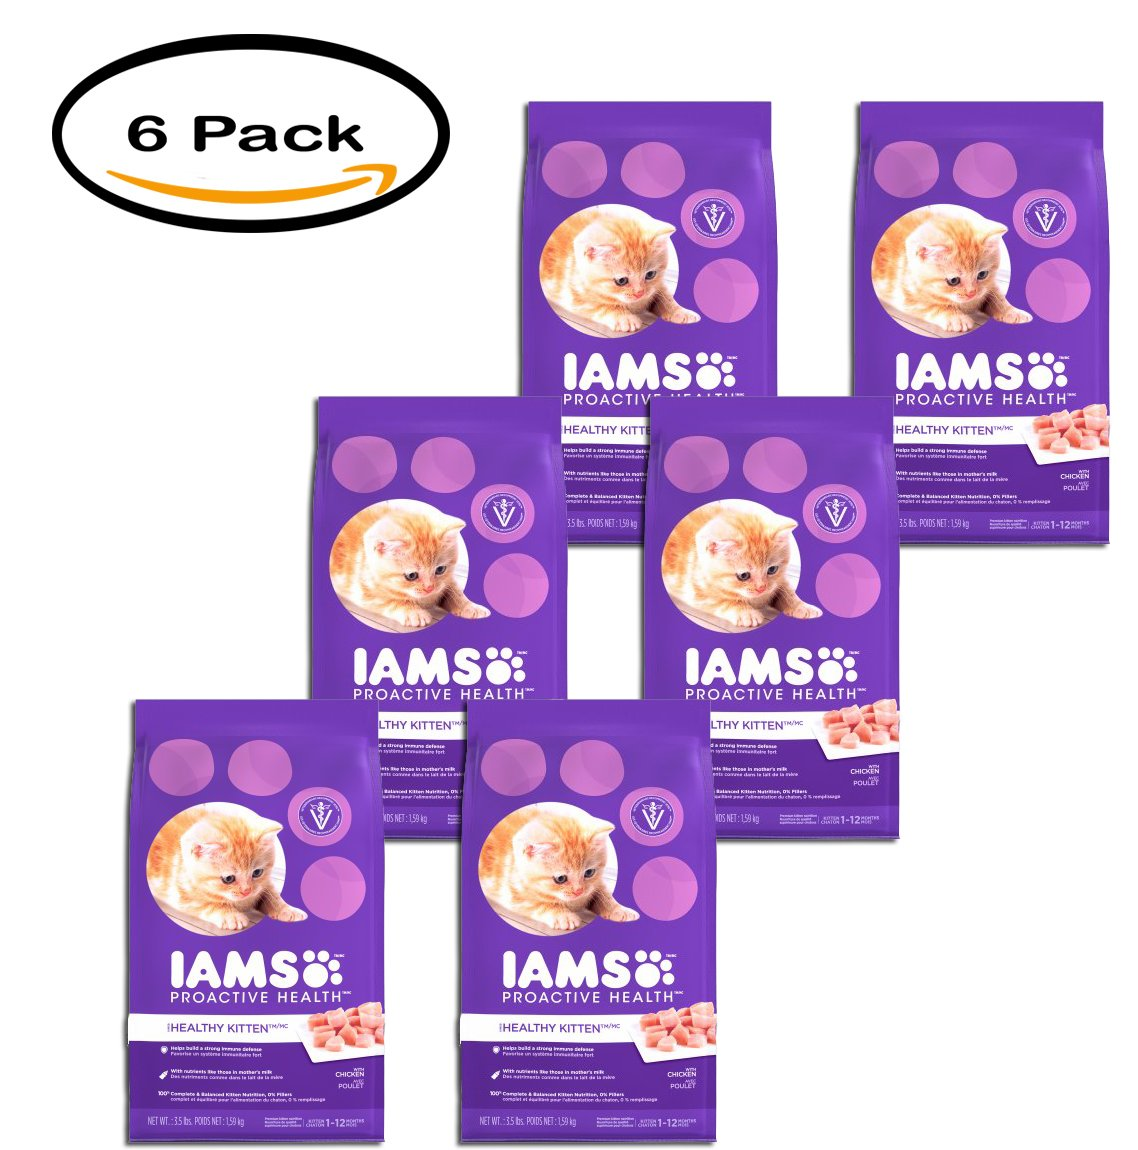 PACK OF 6 - IAMS PROACTIVE HEALTH HEALTHY KITTEN Dry Cat Food 3.5 Pounds by Iams